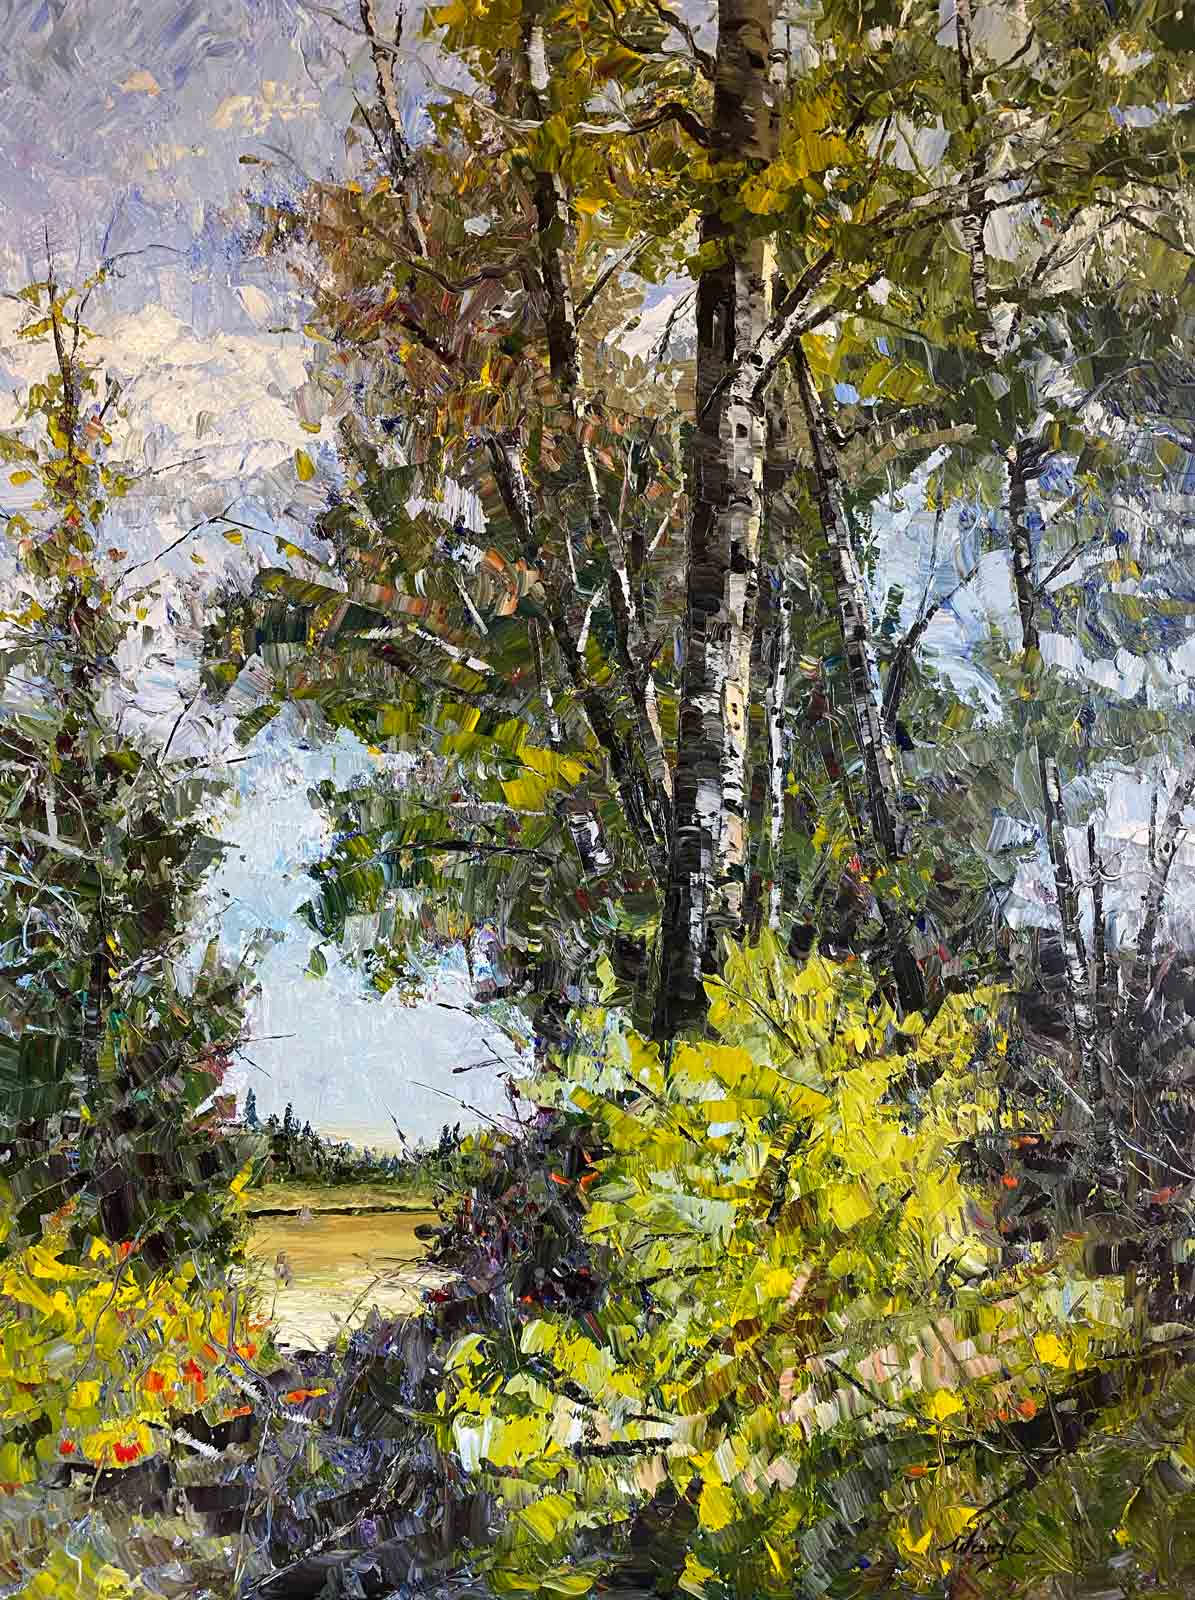 Deschutes River in Bend, Oregon impressionistic oil painting